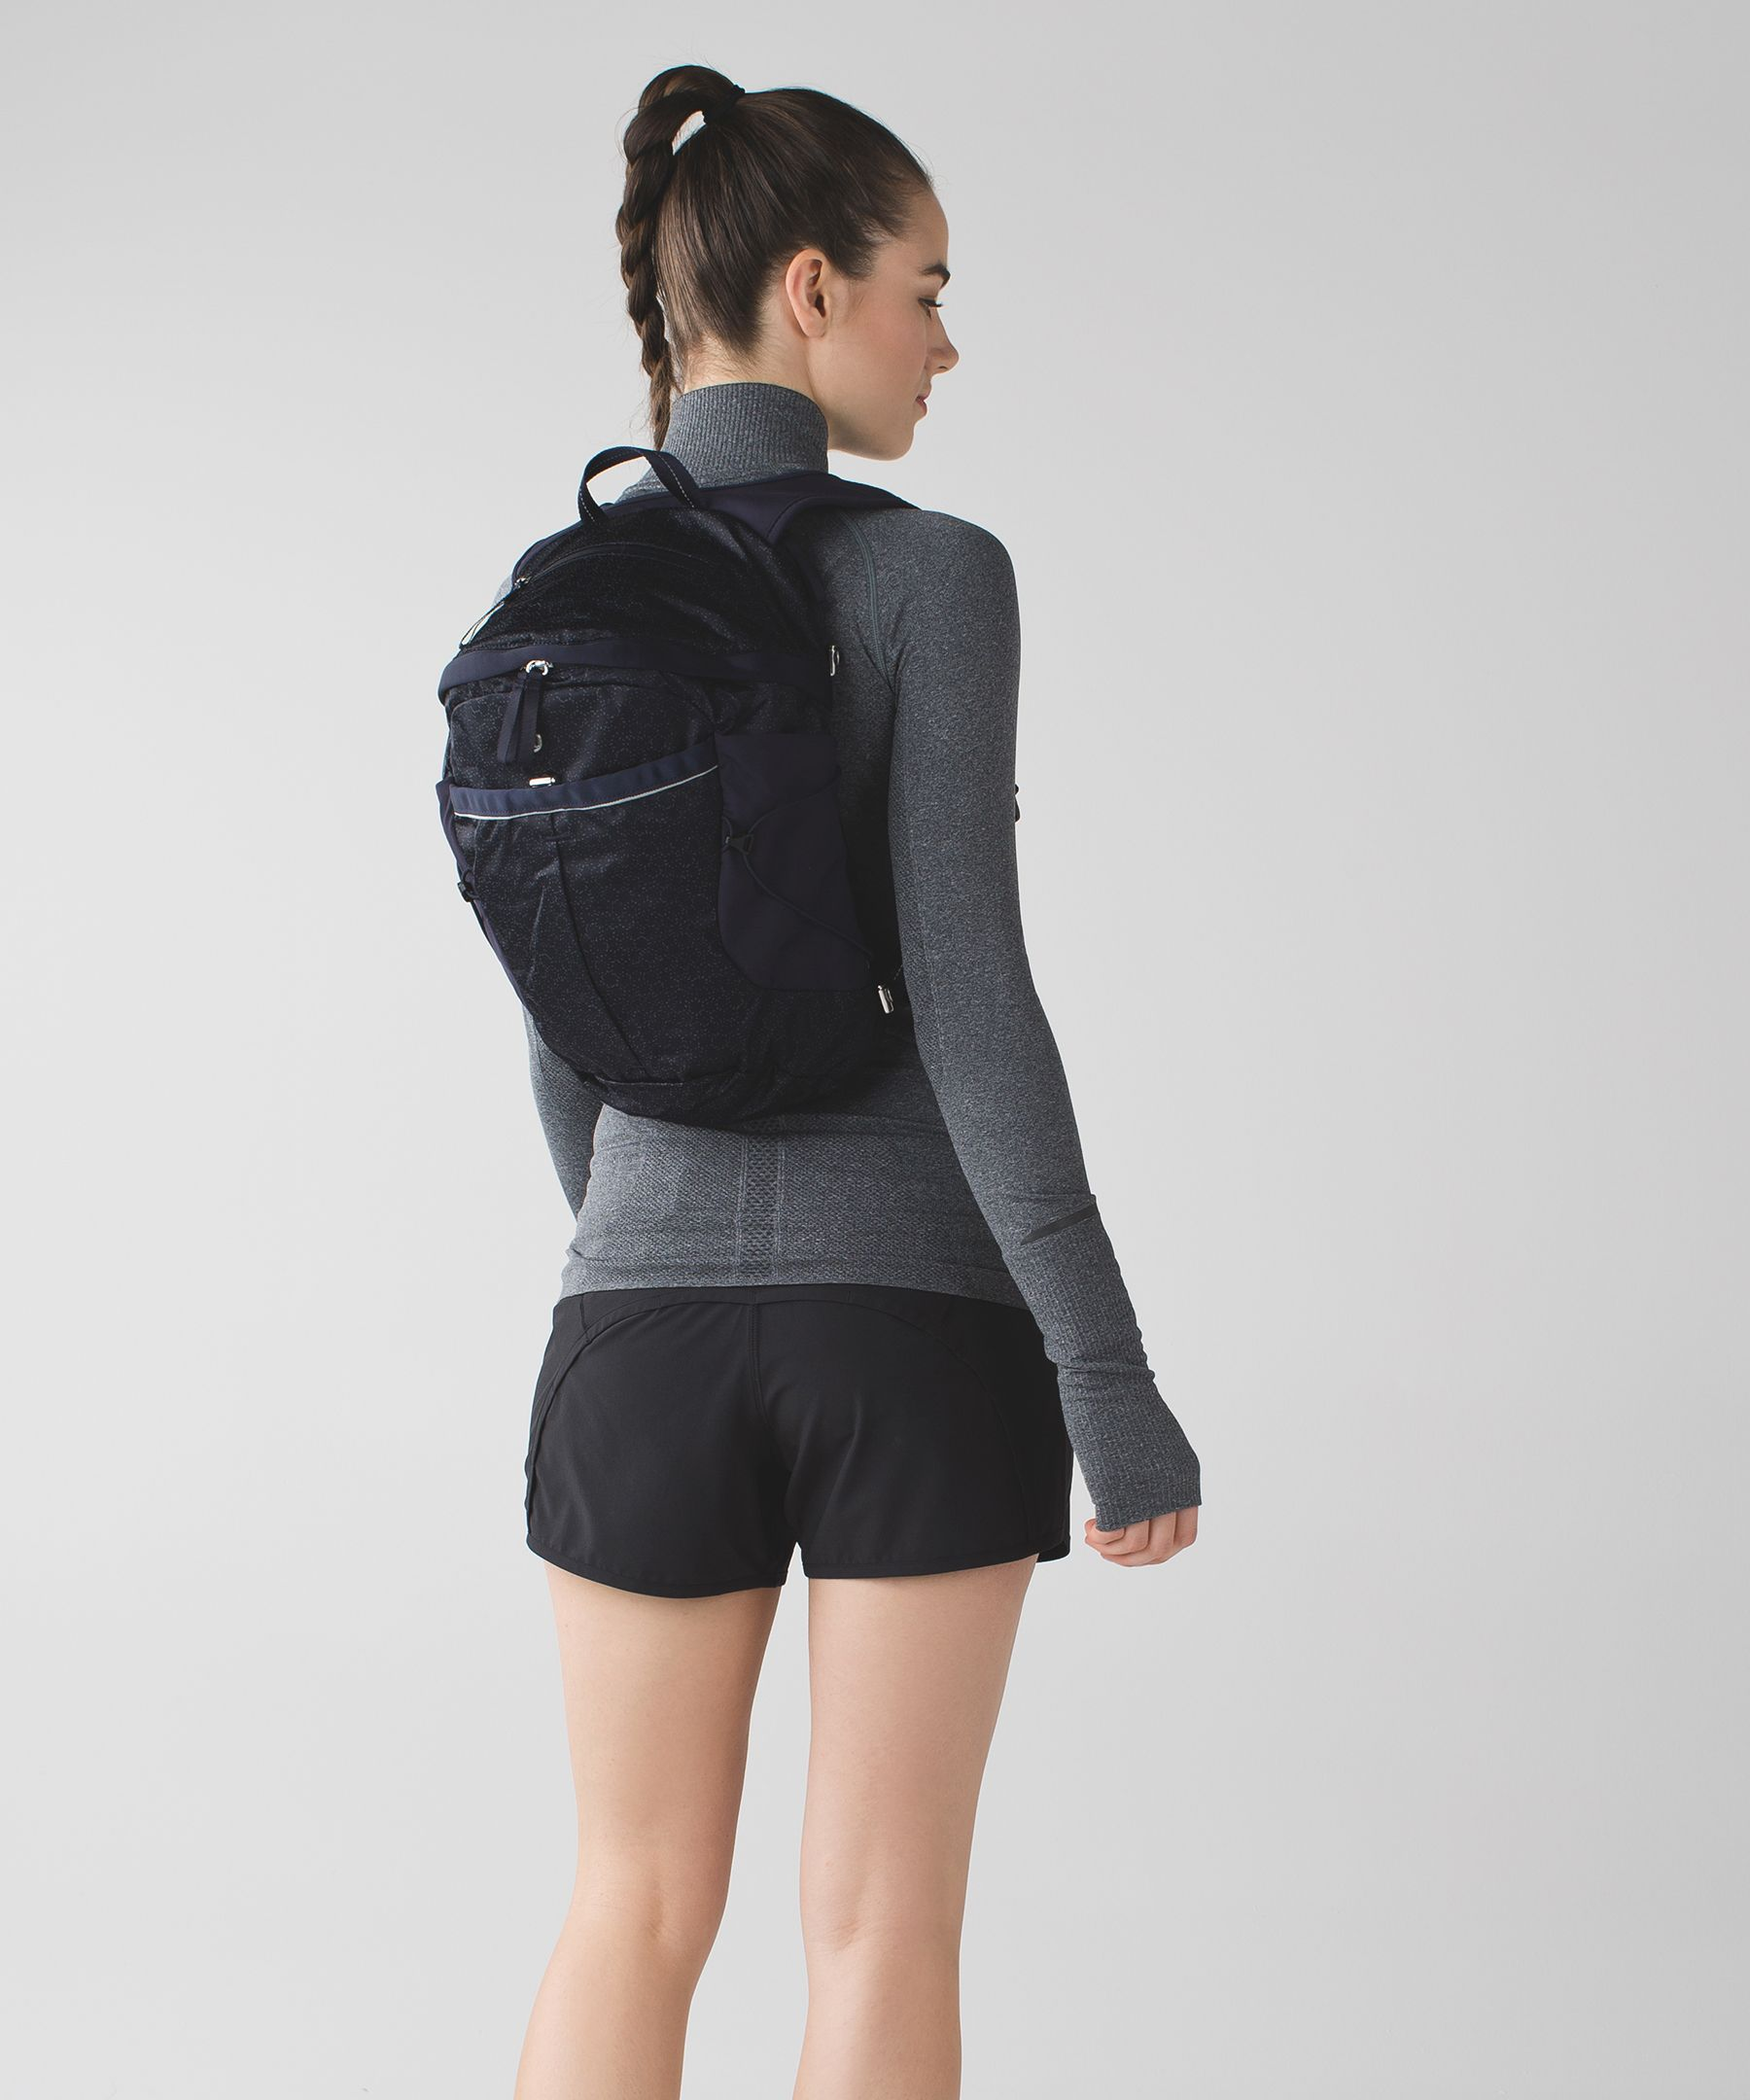 Run All Day Backpack *Reflective